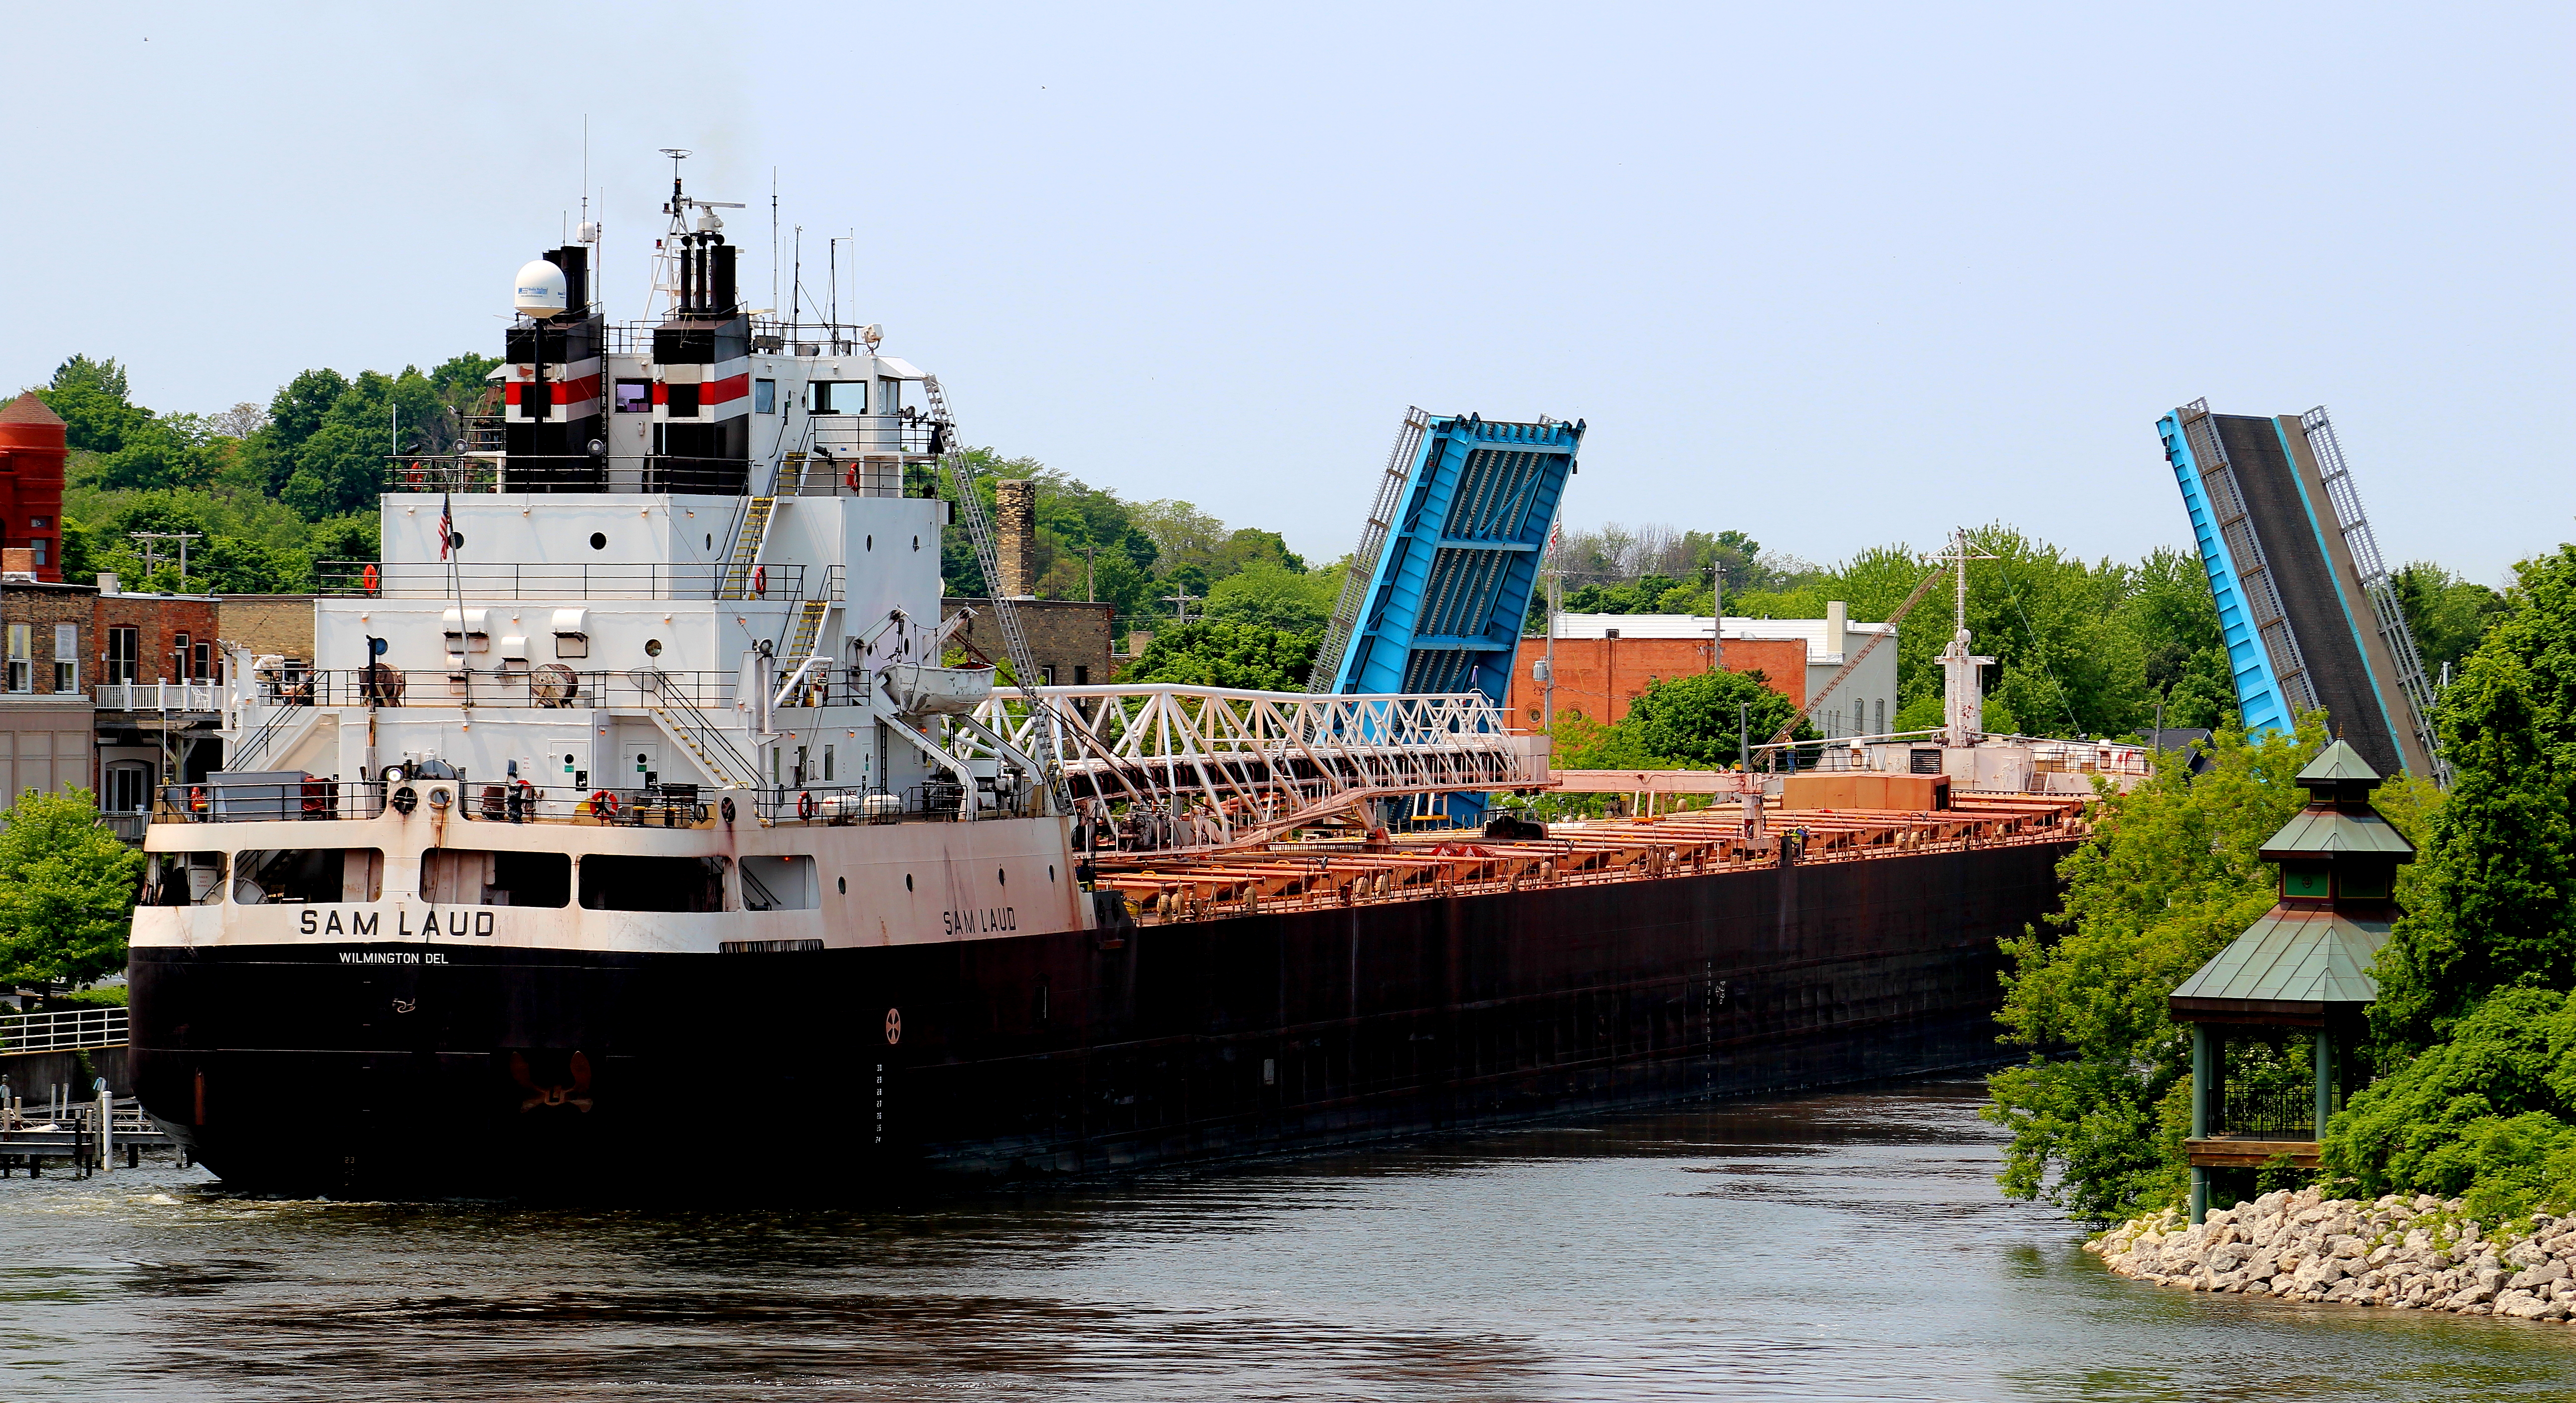 Freighter Sam Laud is seen navigating through Maple Street bascule bridge in the Manistee River Channel